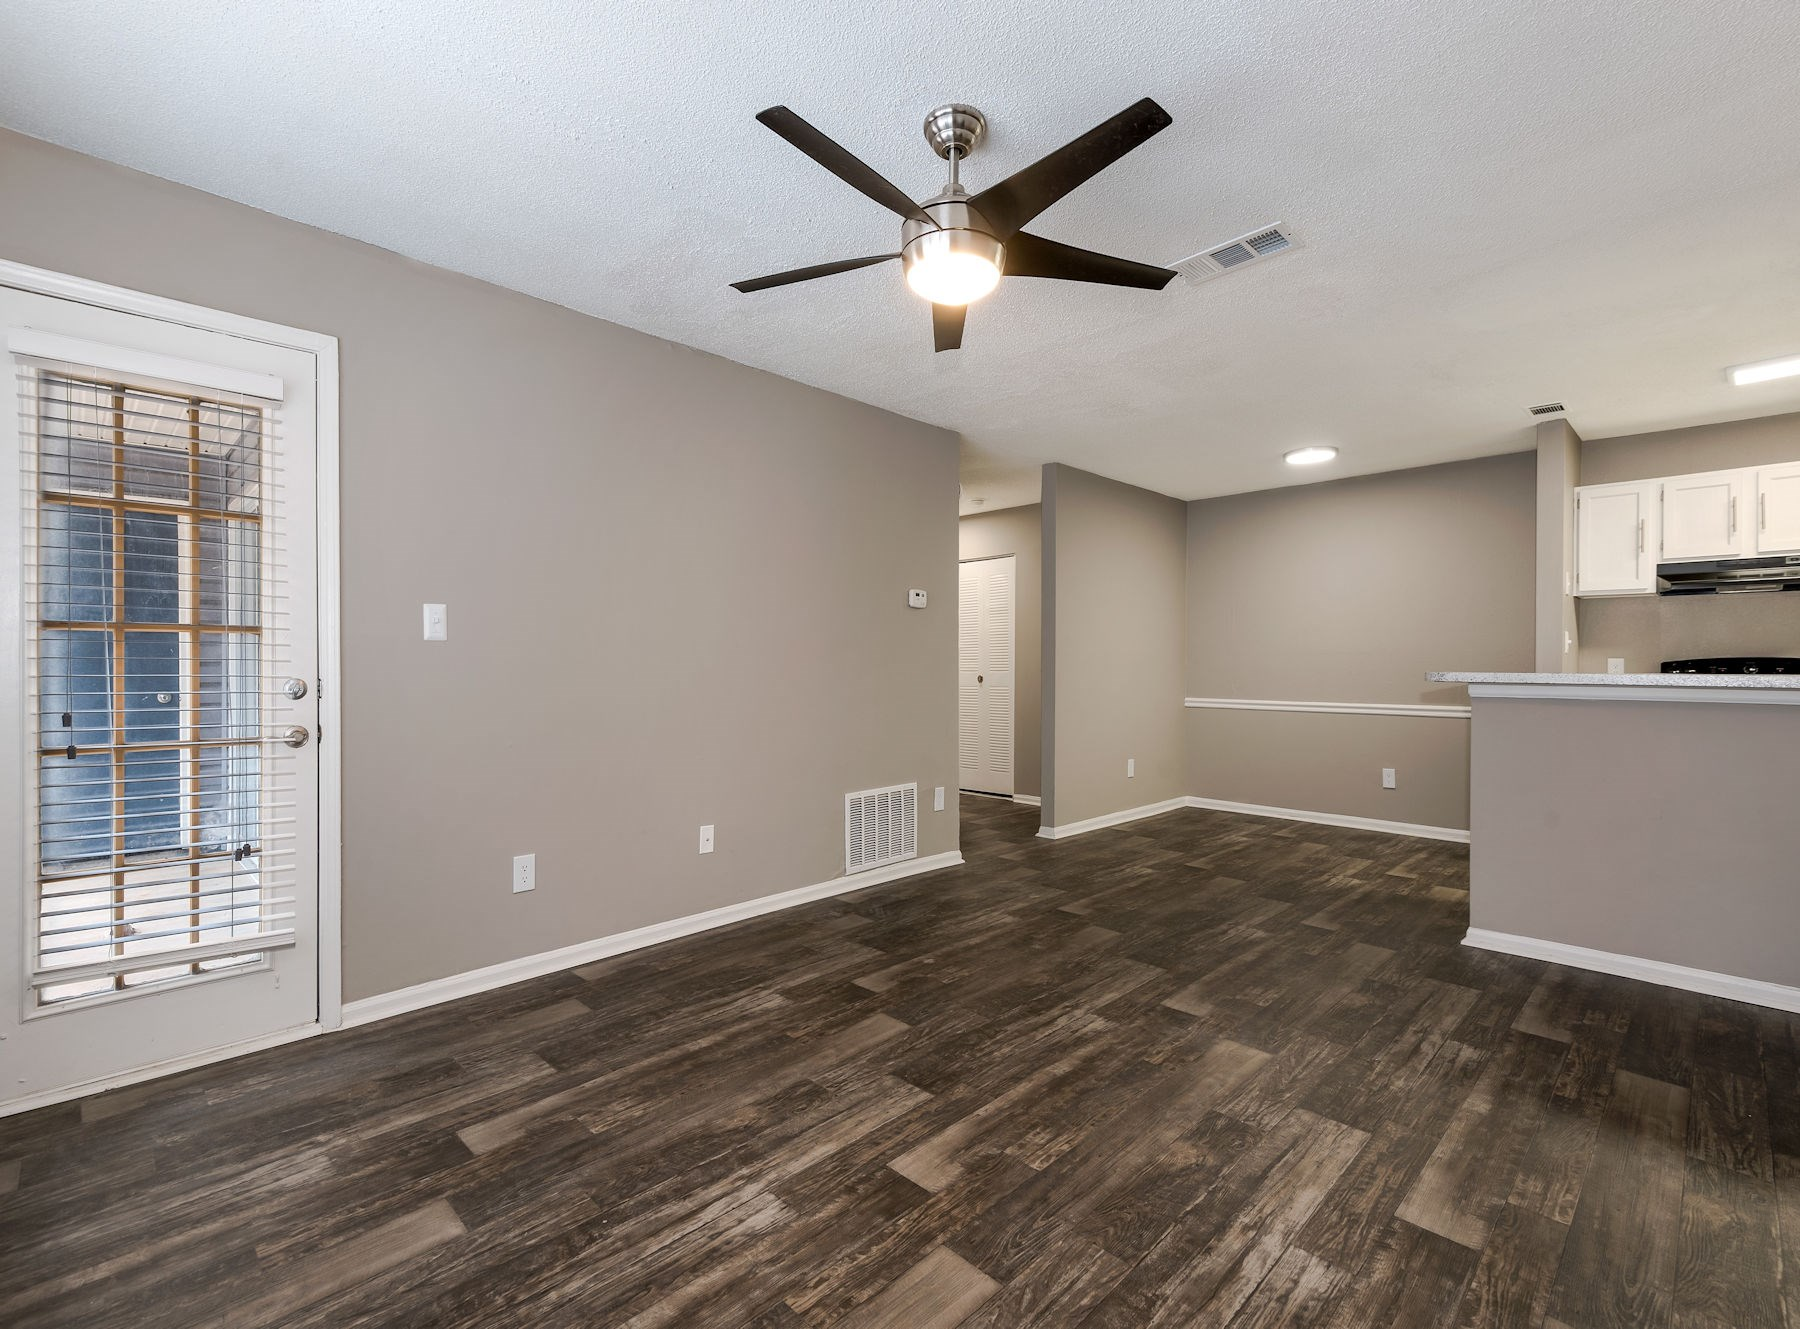 Model Living Area With Ceiling Fan